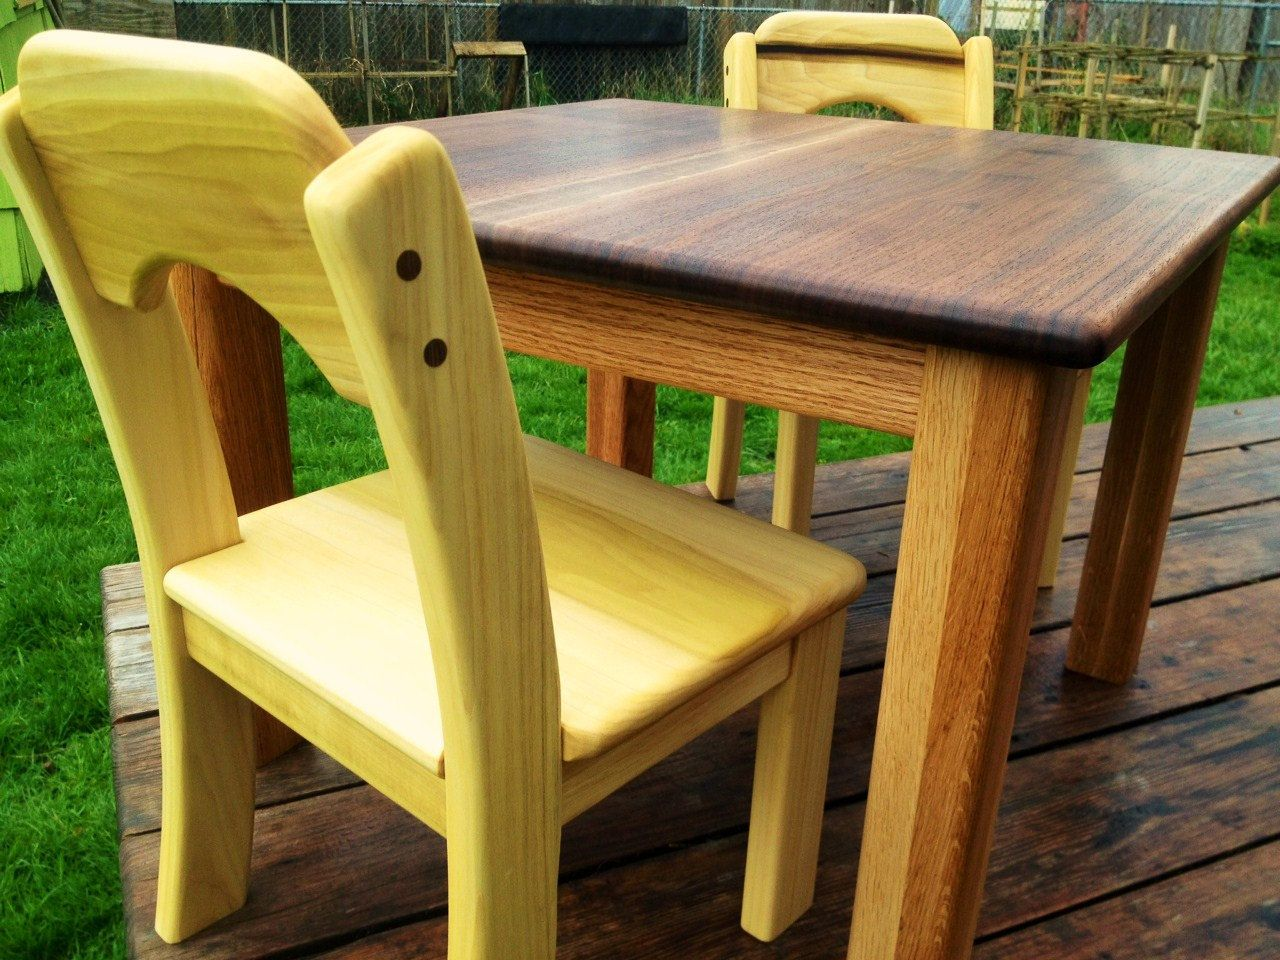 Wooden Table And Chair S Set 380 00 Via Etsy Wooden Table